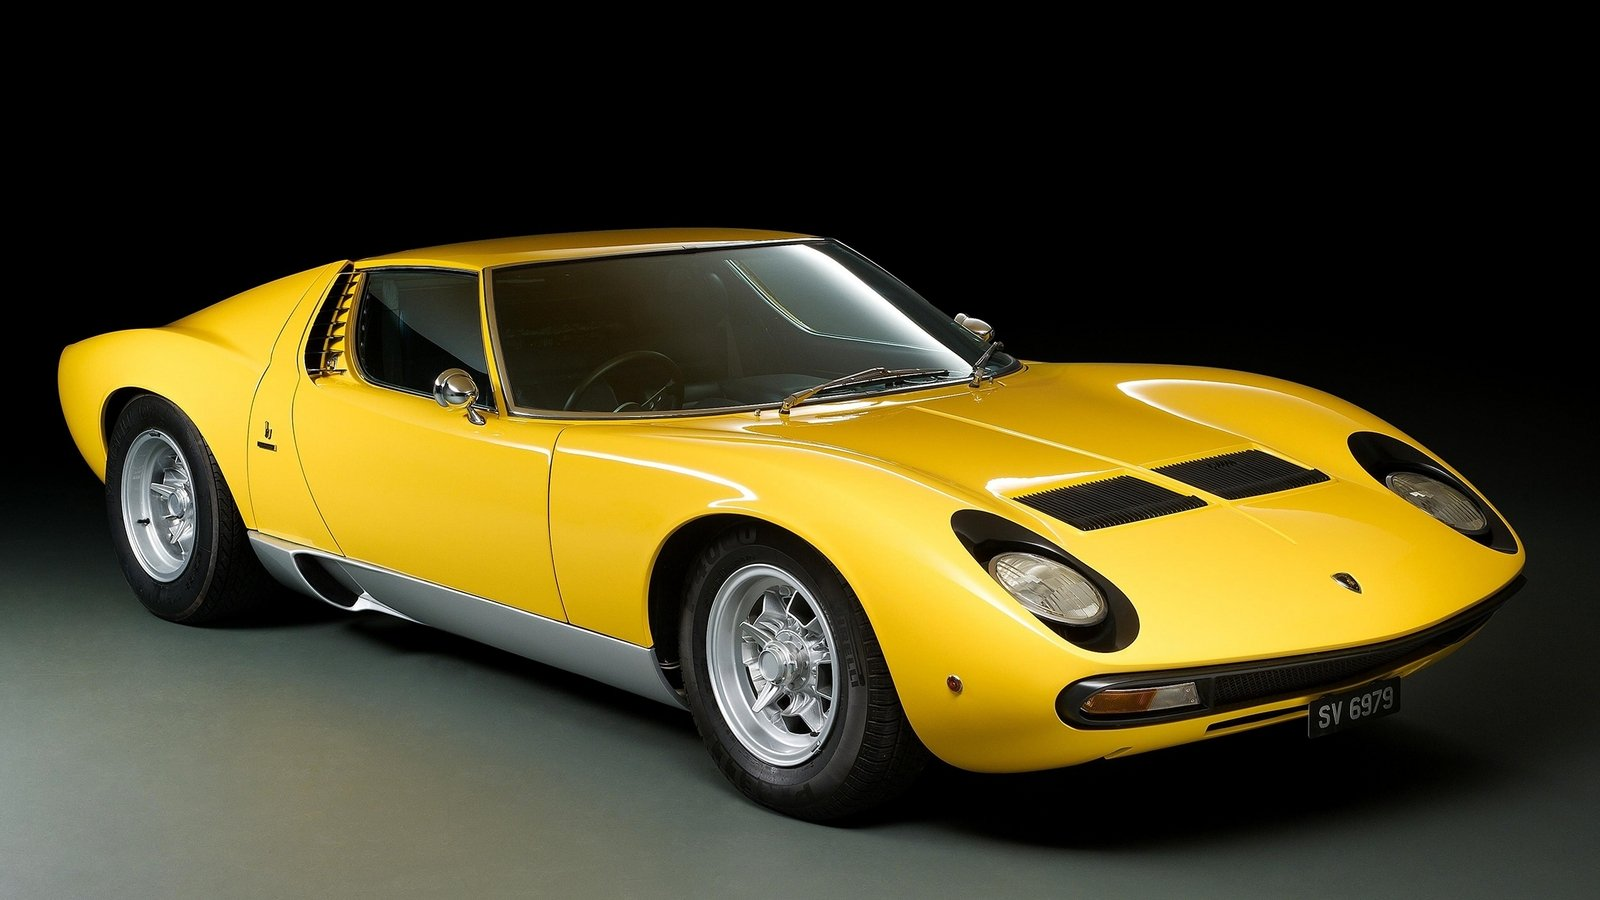 1971 1972 lamborghini miura sv picture 629117 car review top speed. Black Bedroom Furniture Sets. Home Design Ideas